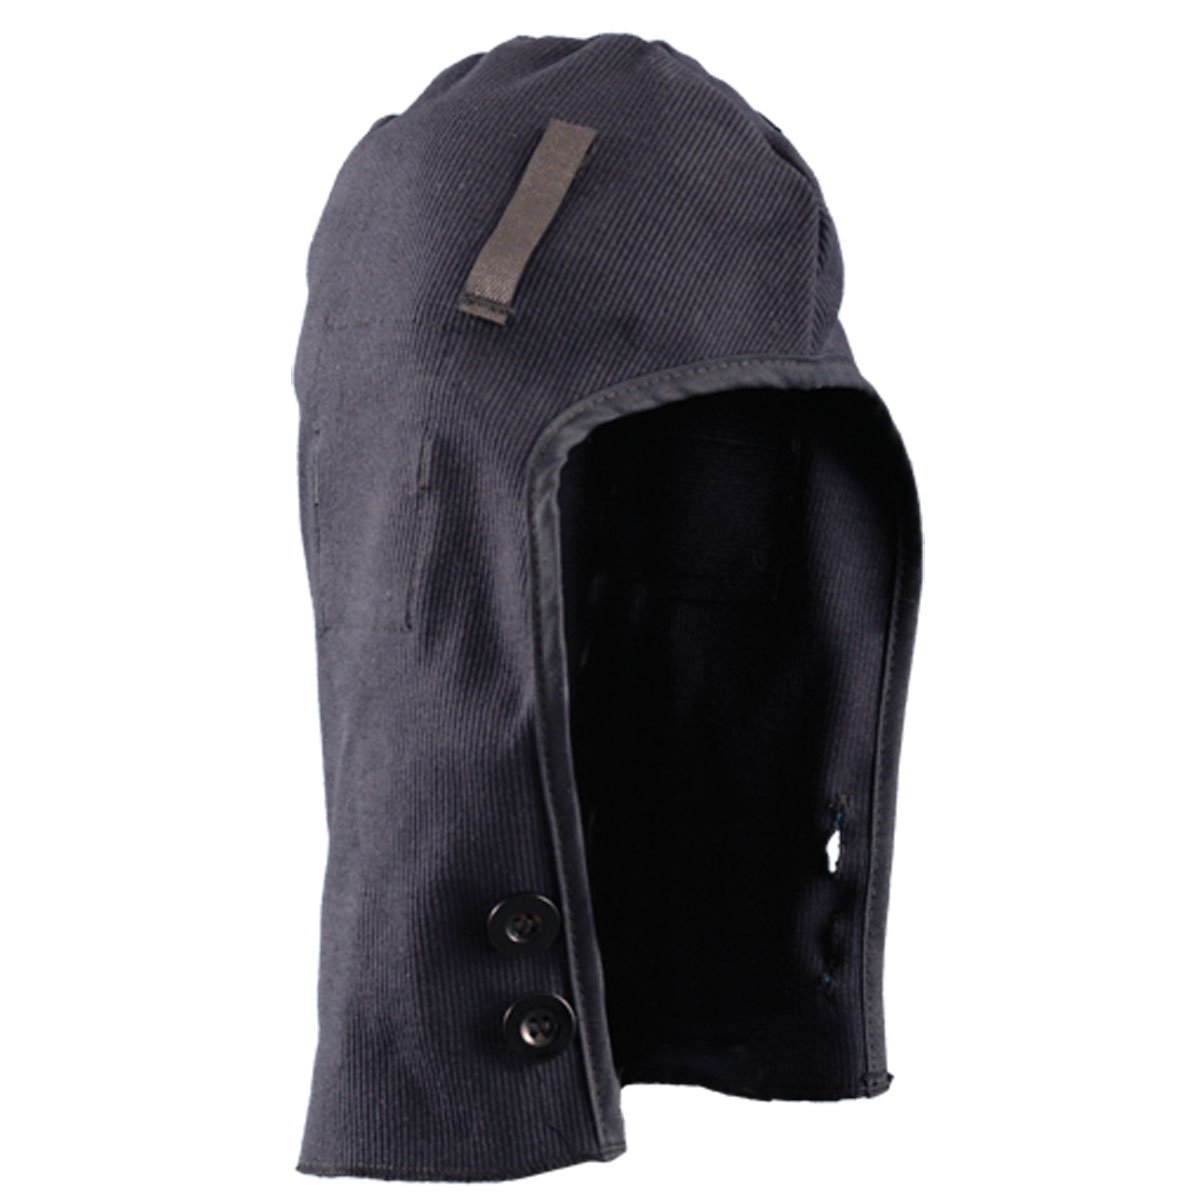 Stay Warm - PREMIUM Flame Resistant Shoulder-Length Liner - PACK OF 12 by Haynesville